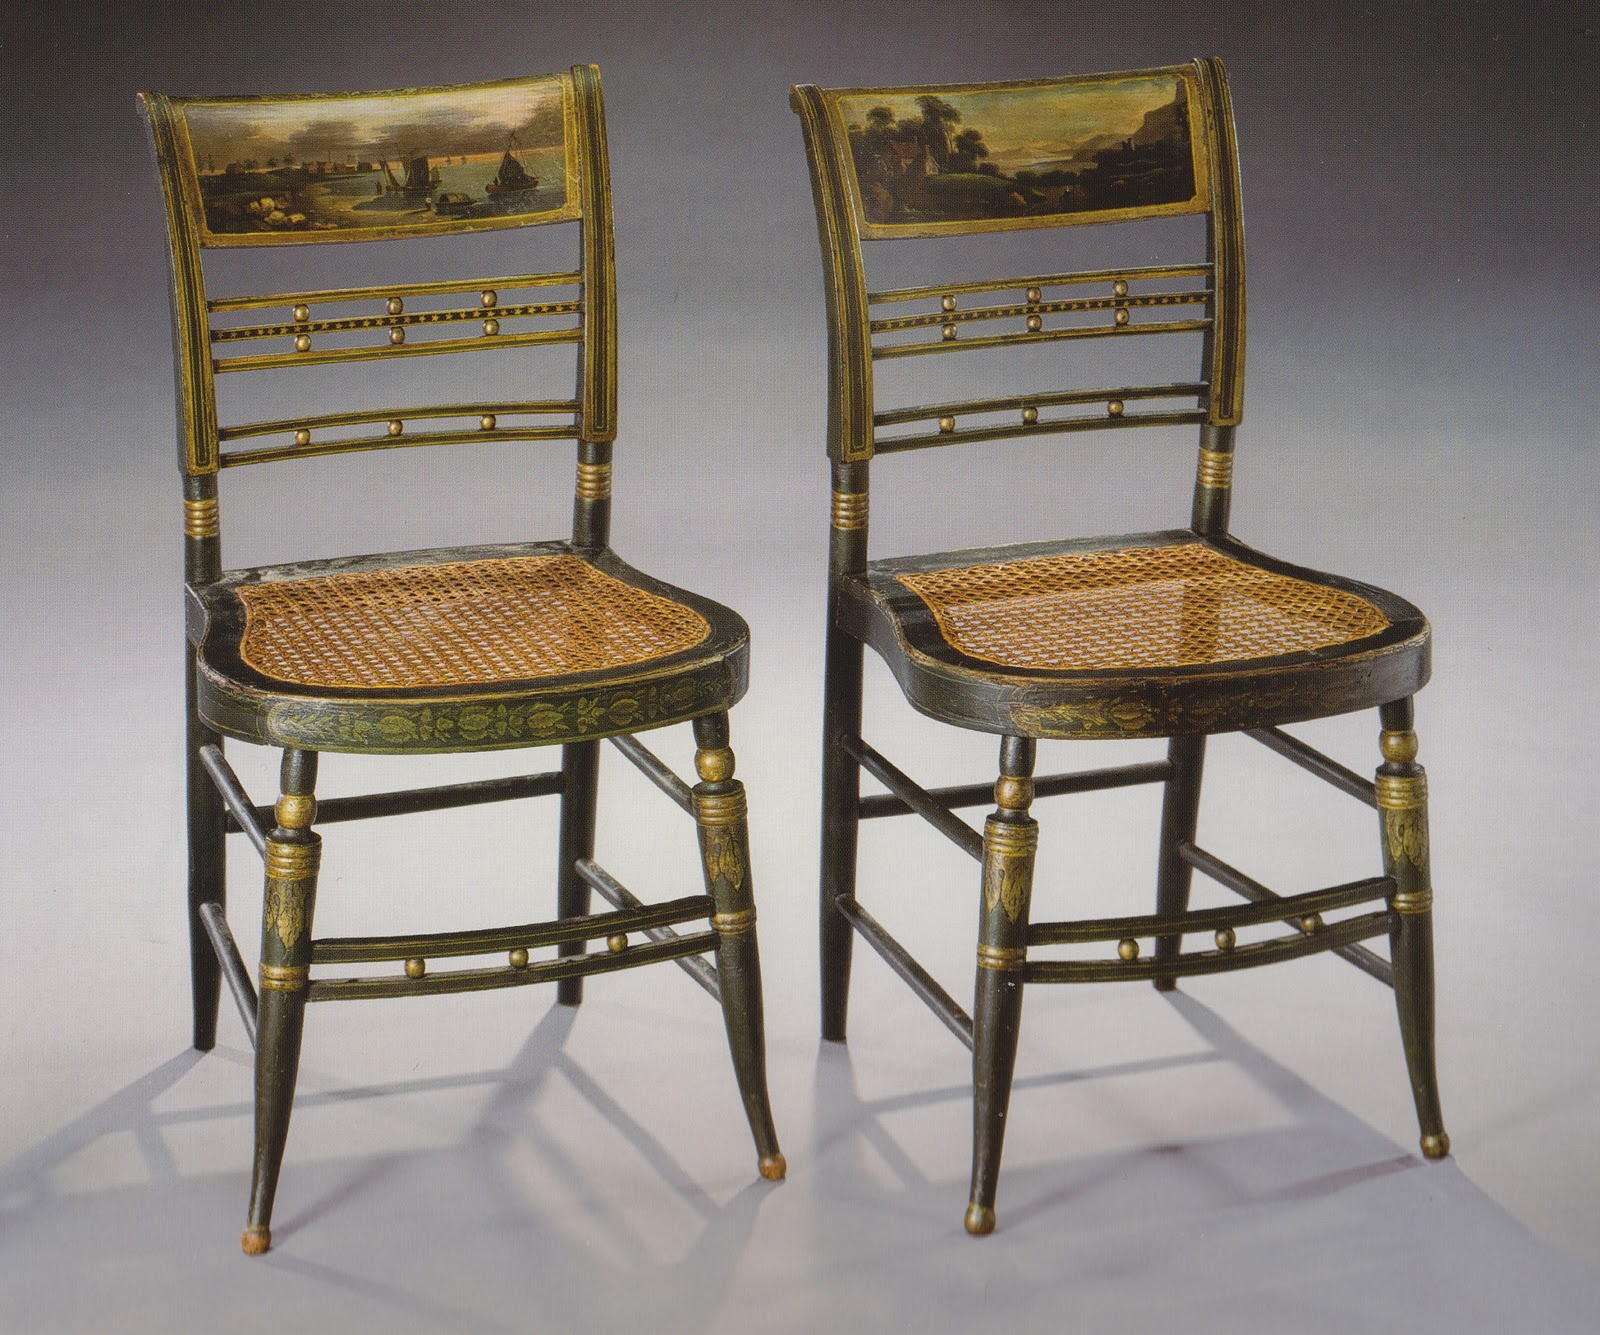 Reggie Darling: Winning Bid: American Fancy Chairs